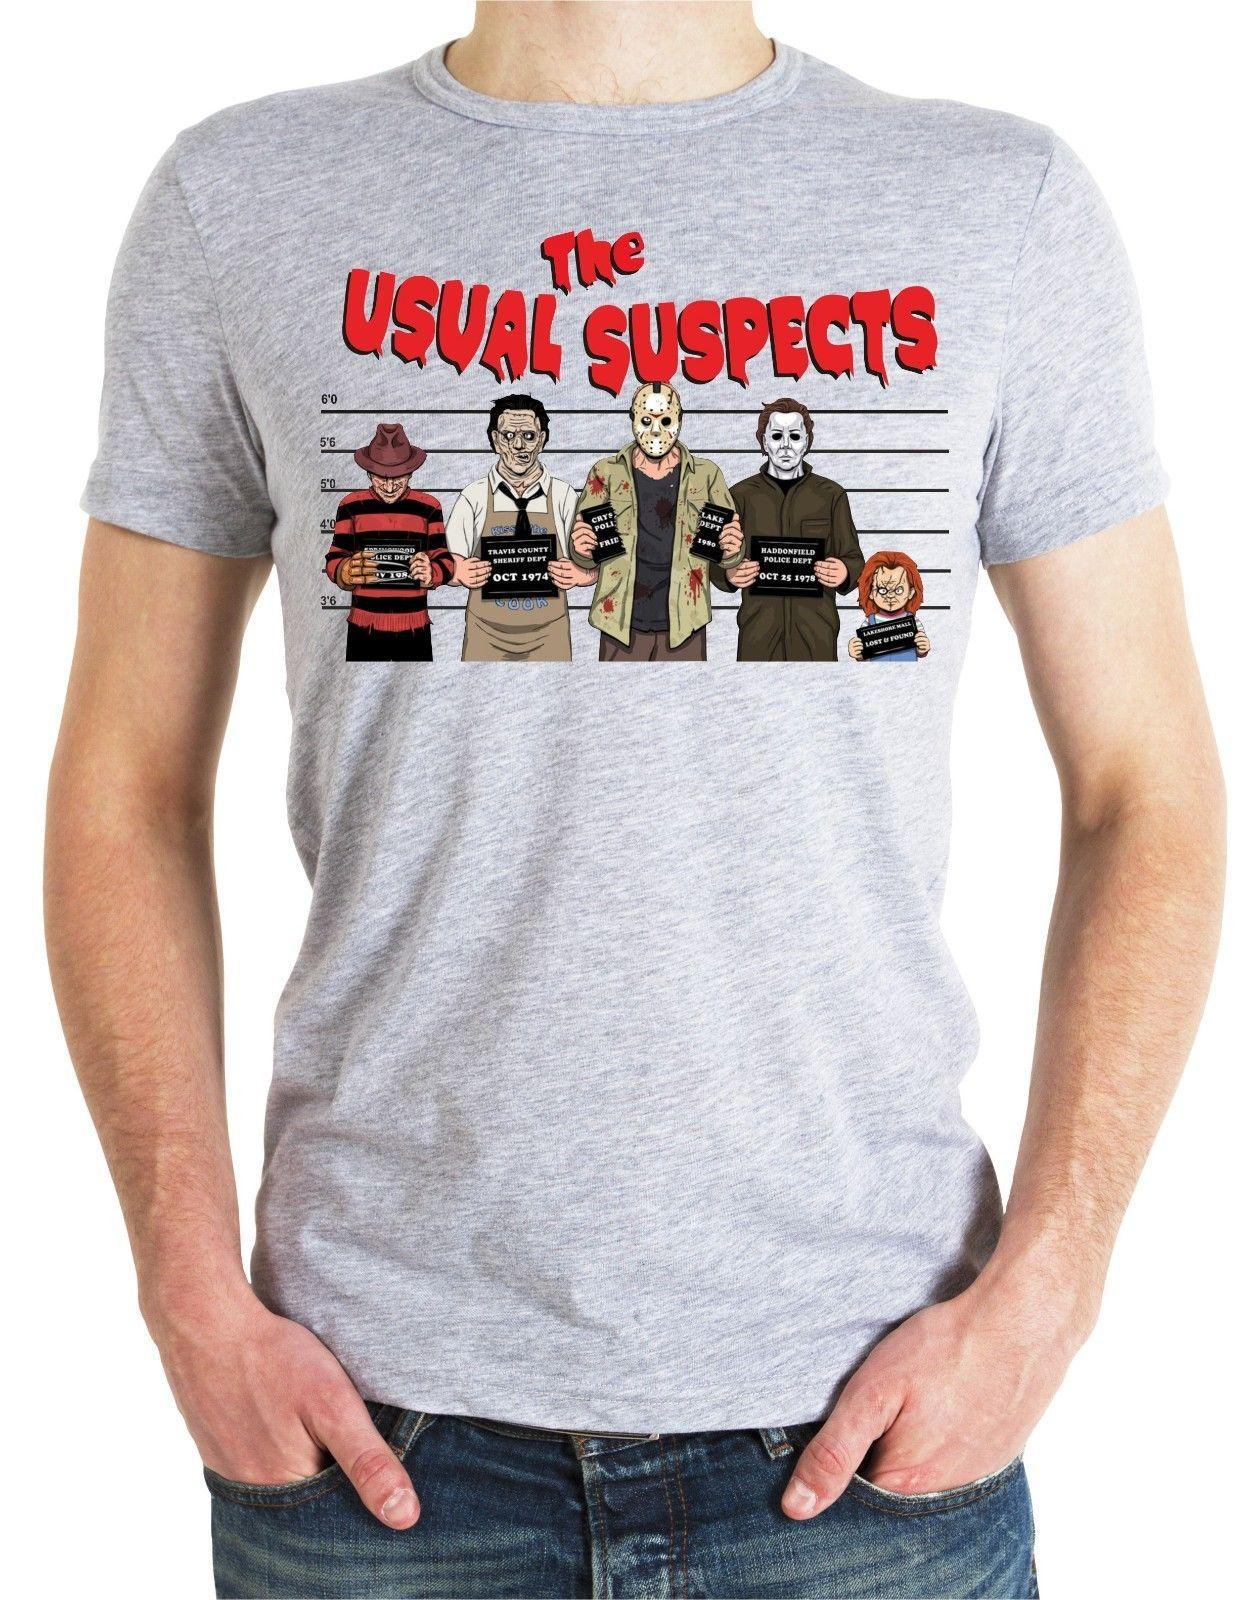 Halloween Usual Suspects T Shirt Top Chucky Freddy Krueger Zombie Jason Blood gr Cool Casual pride t shirt men Unisex New